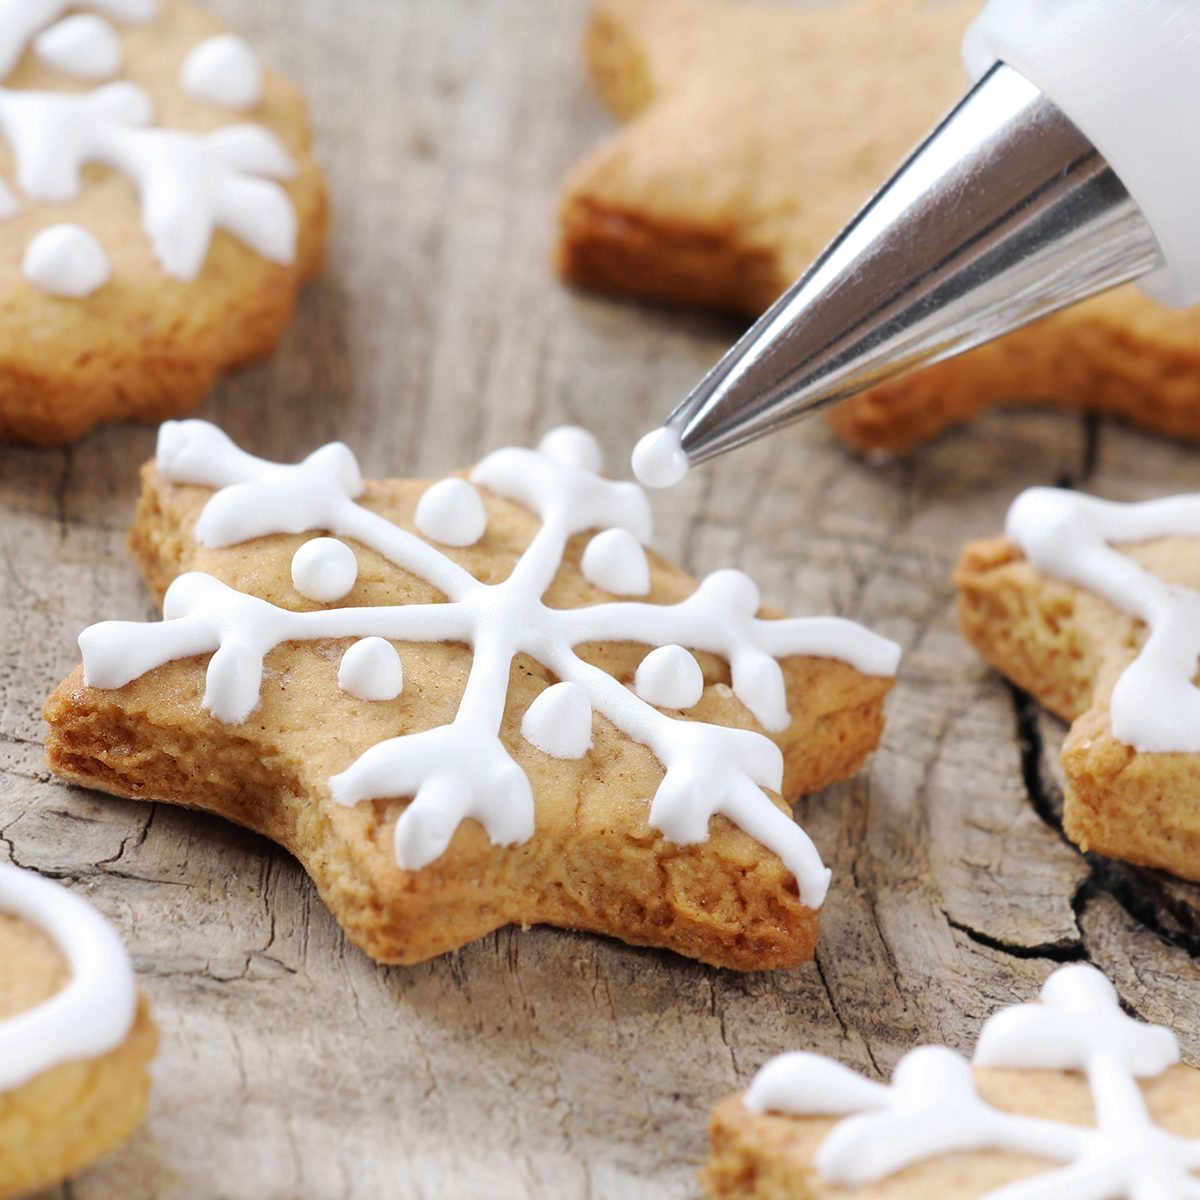 cookie decorating tips Christmas cinnamon cookies icing decorating process with a pastry bag